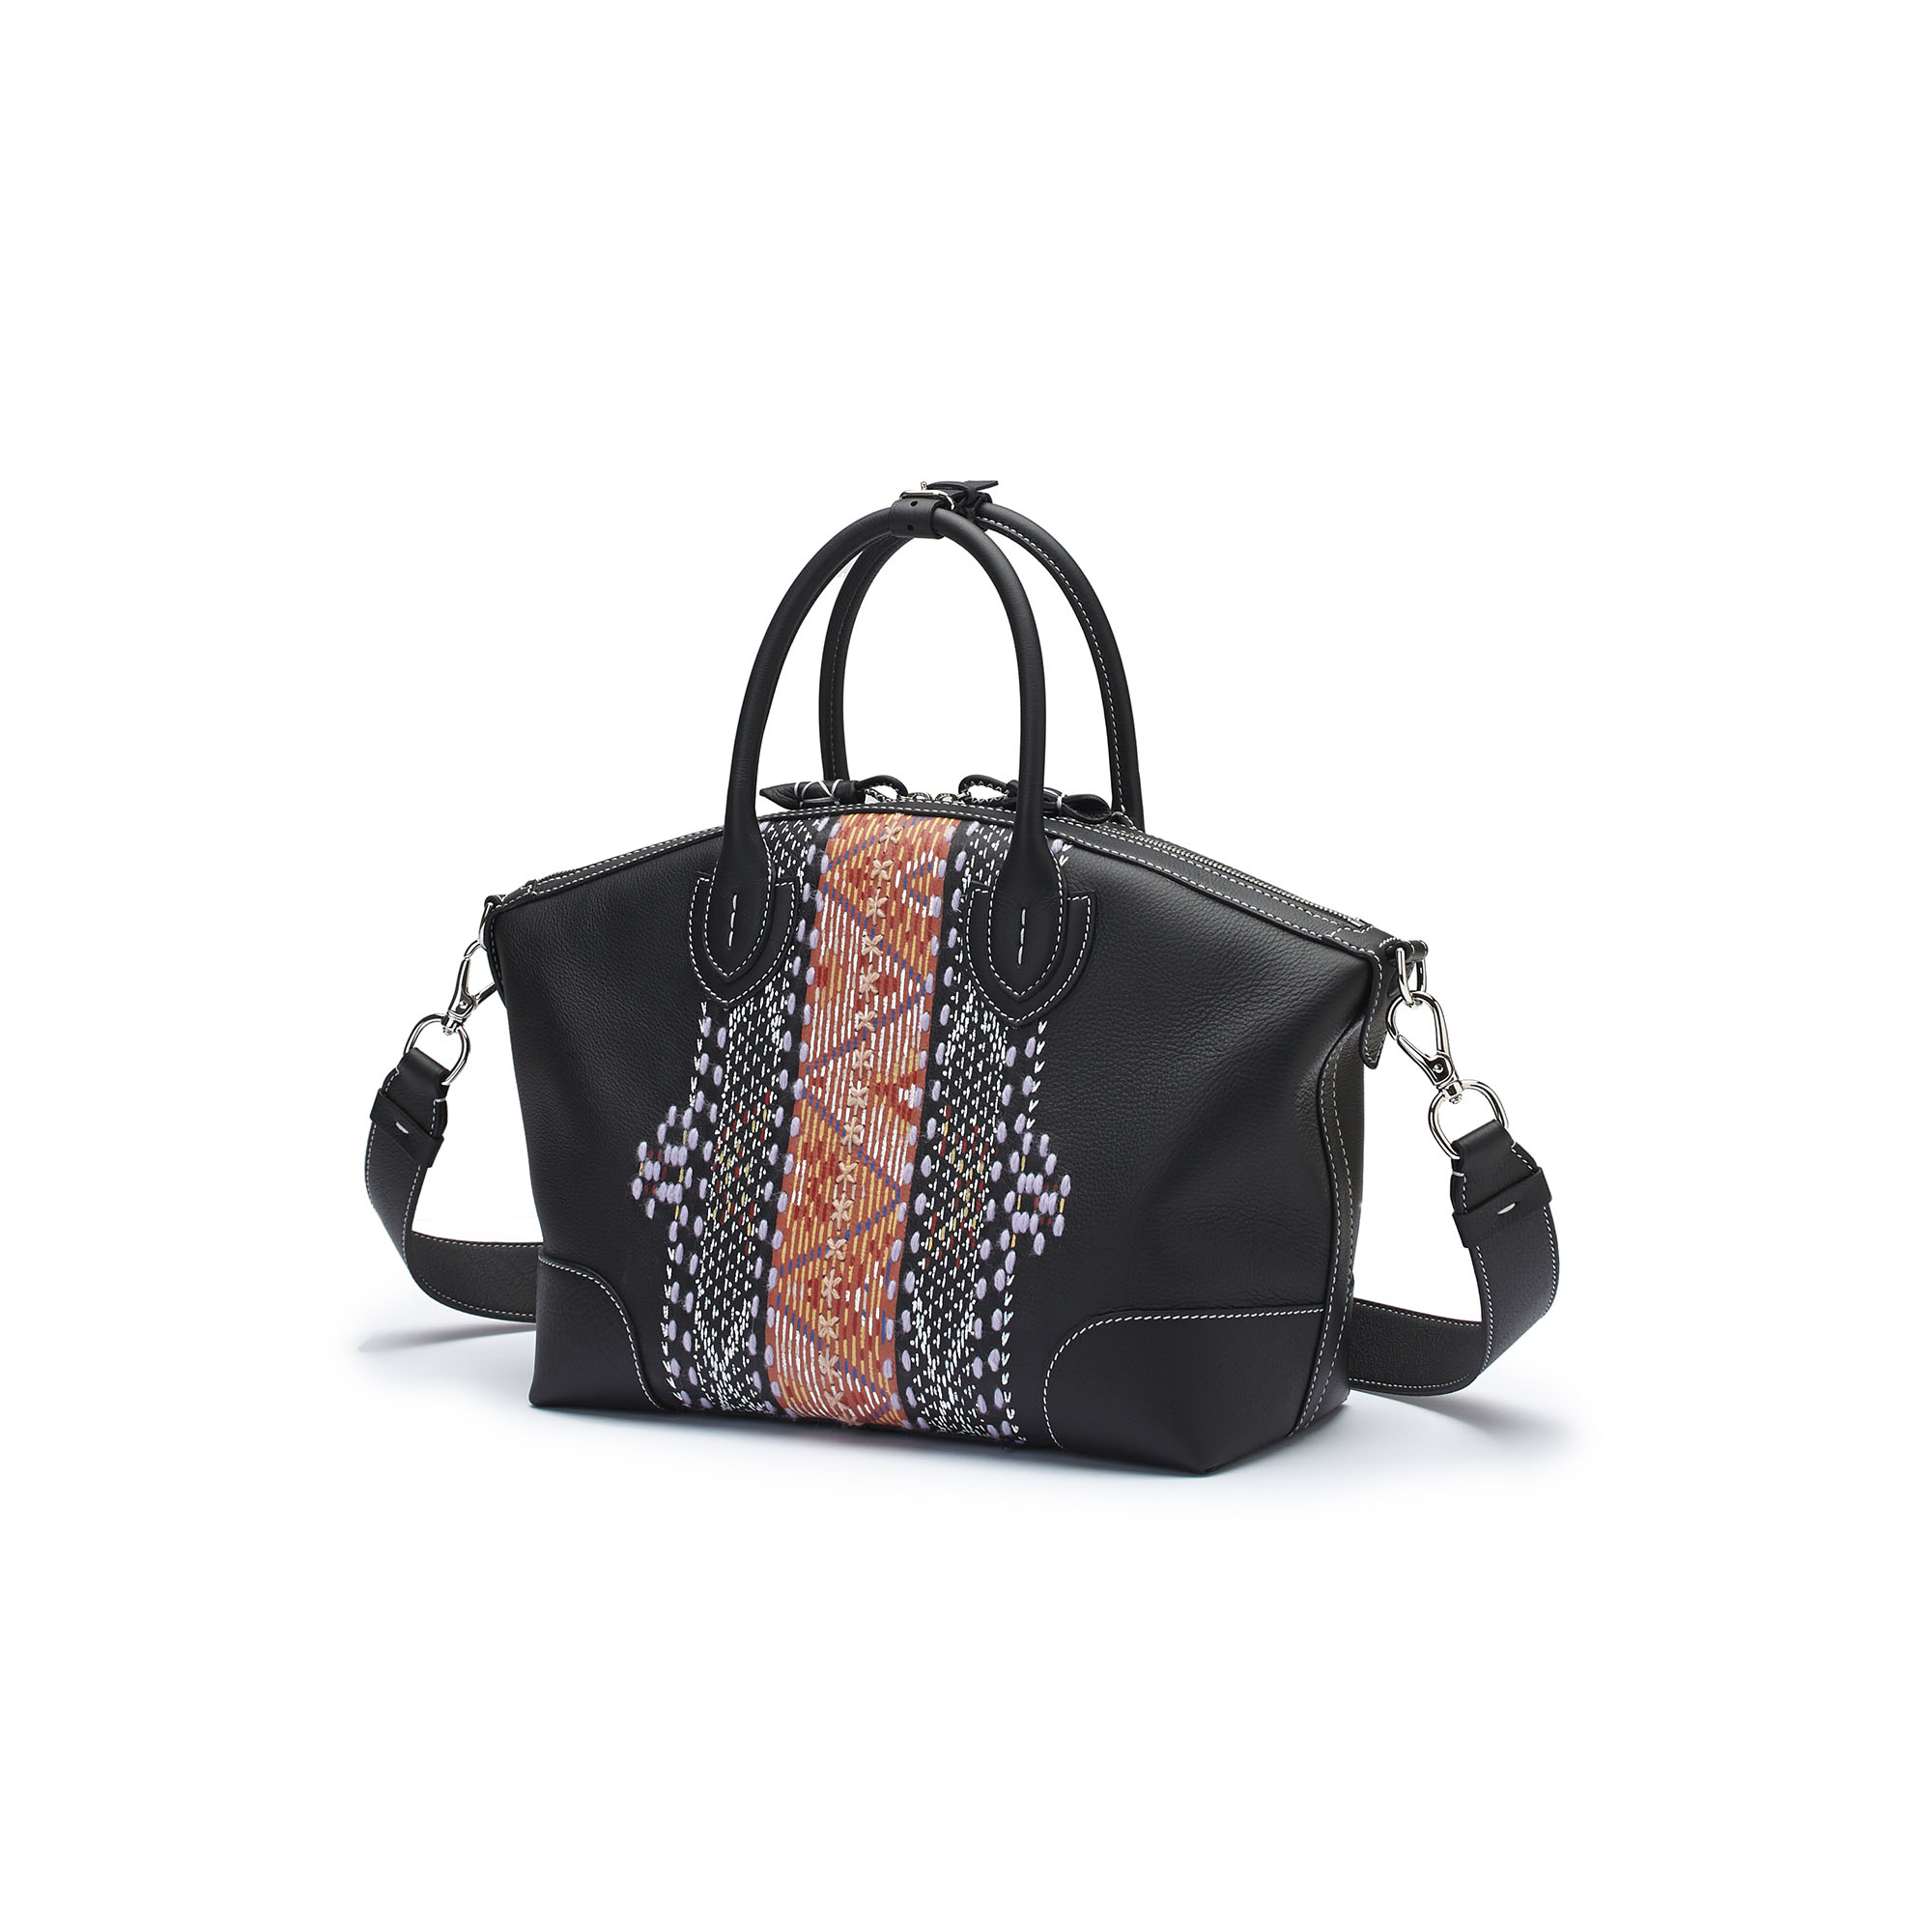 The black embroidered hand painted soft calf Anija bag by Bertoni 1949 04